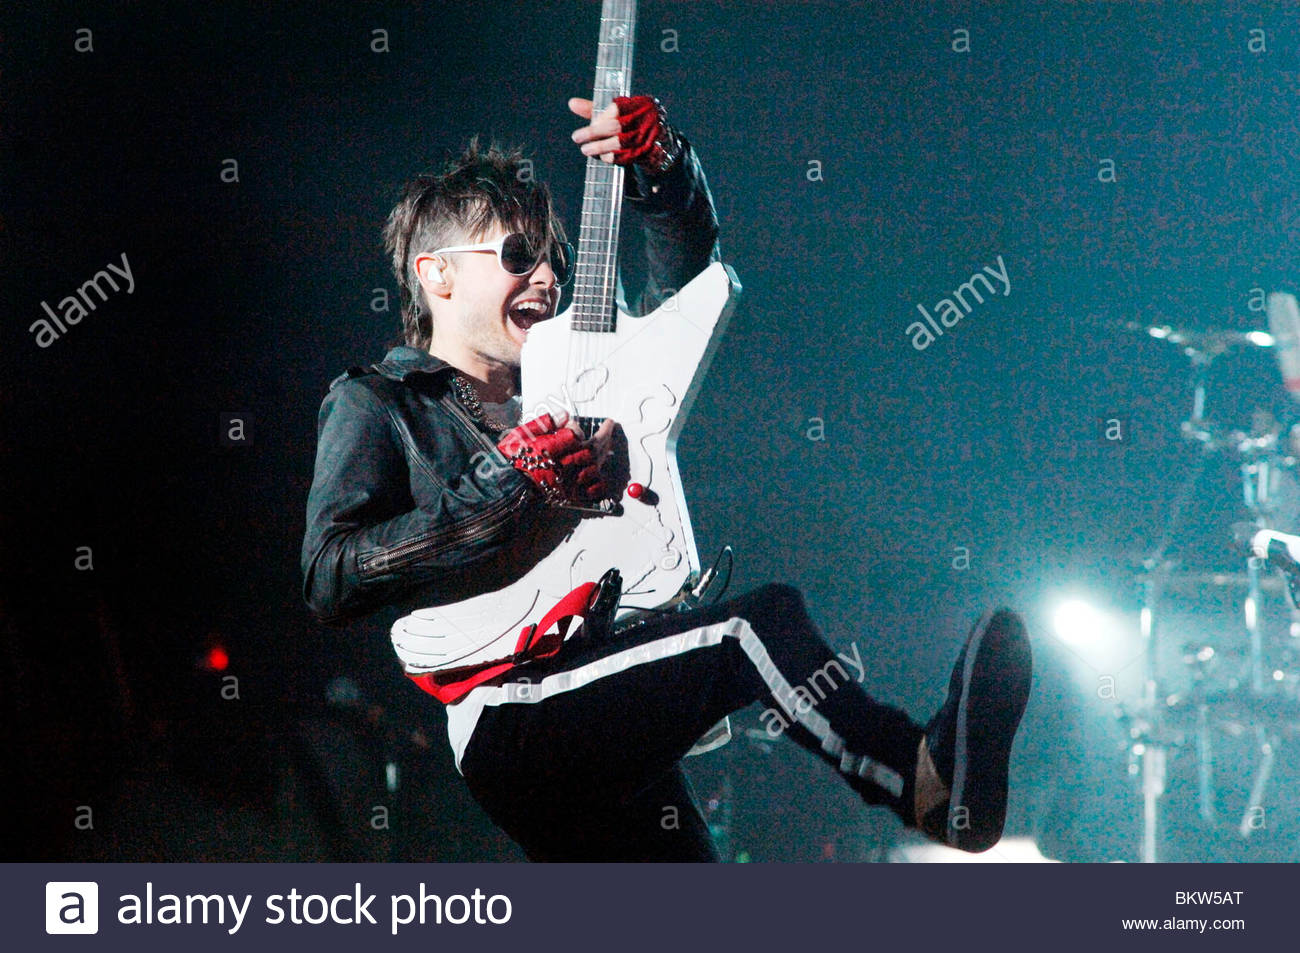 30 seconds to mars,jared leto - Stock Image